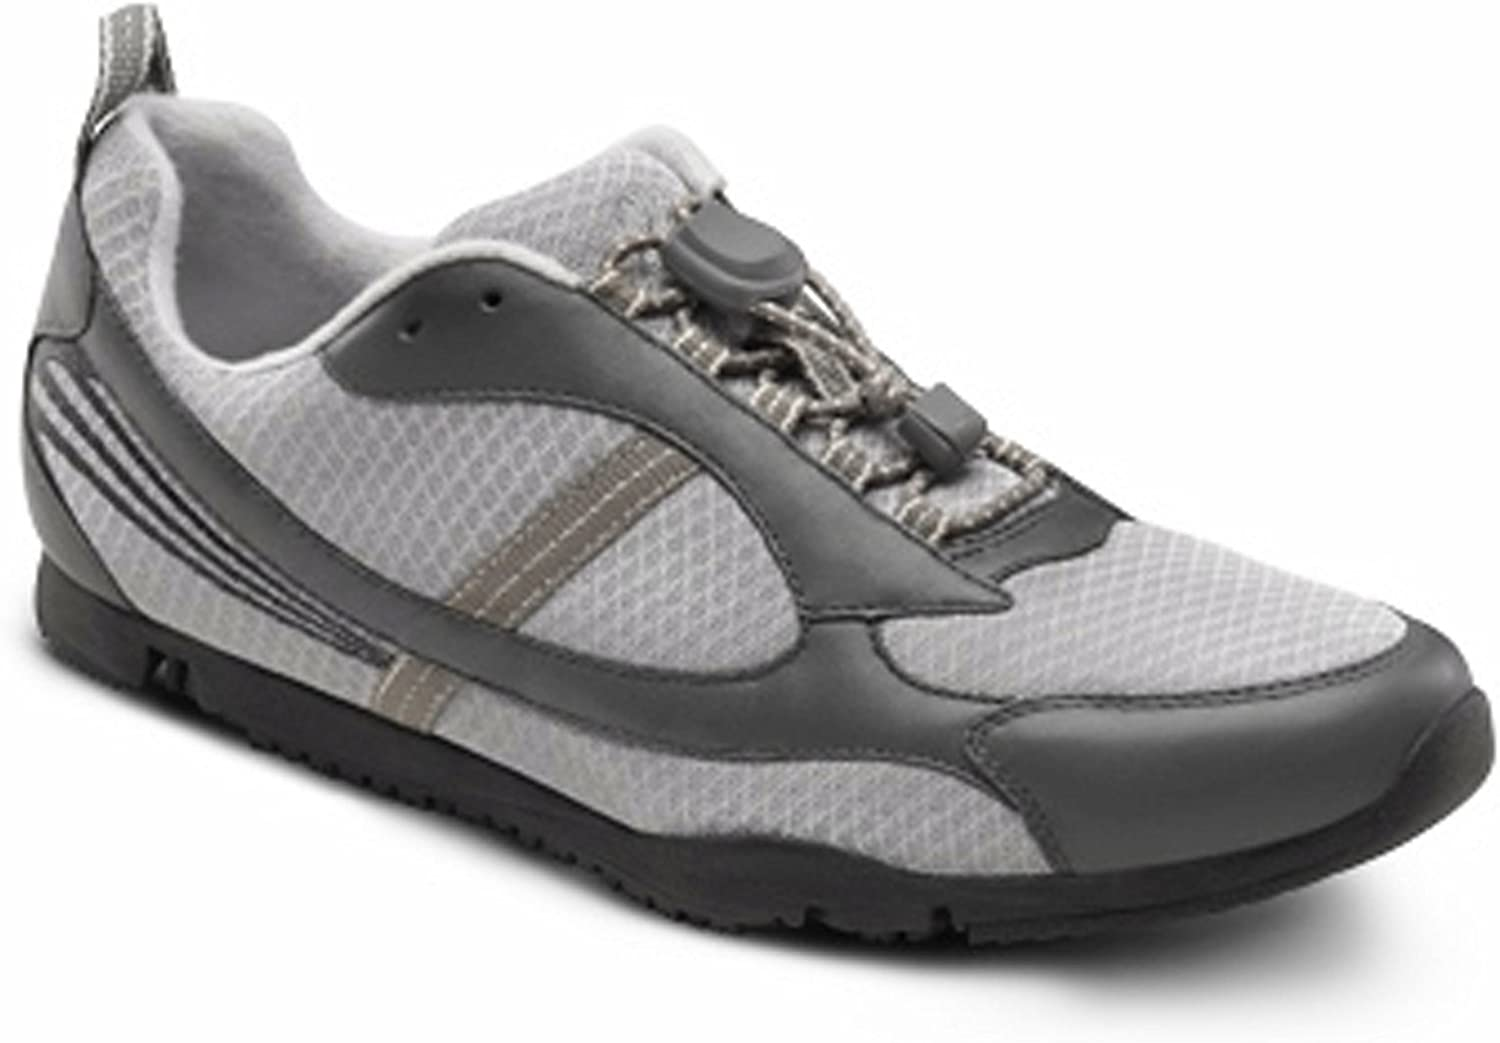 26a8b2193 Dr Dr Dr Comfort Gary Flex-OA Men's shoes for Knee Pain - Osteoarthritis OA  Leather-and-Mesh Lace 25fae9